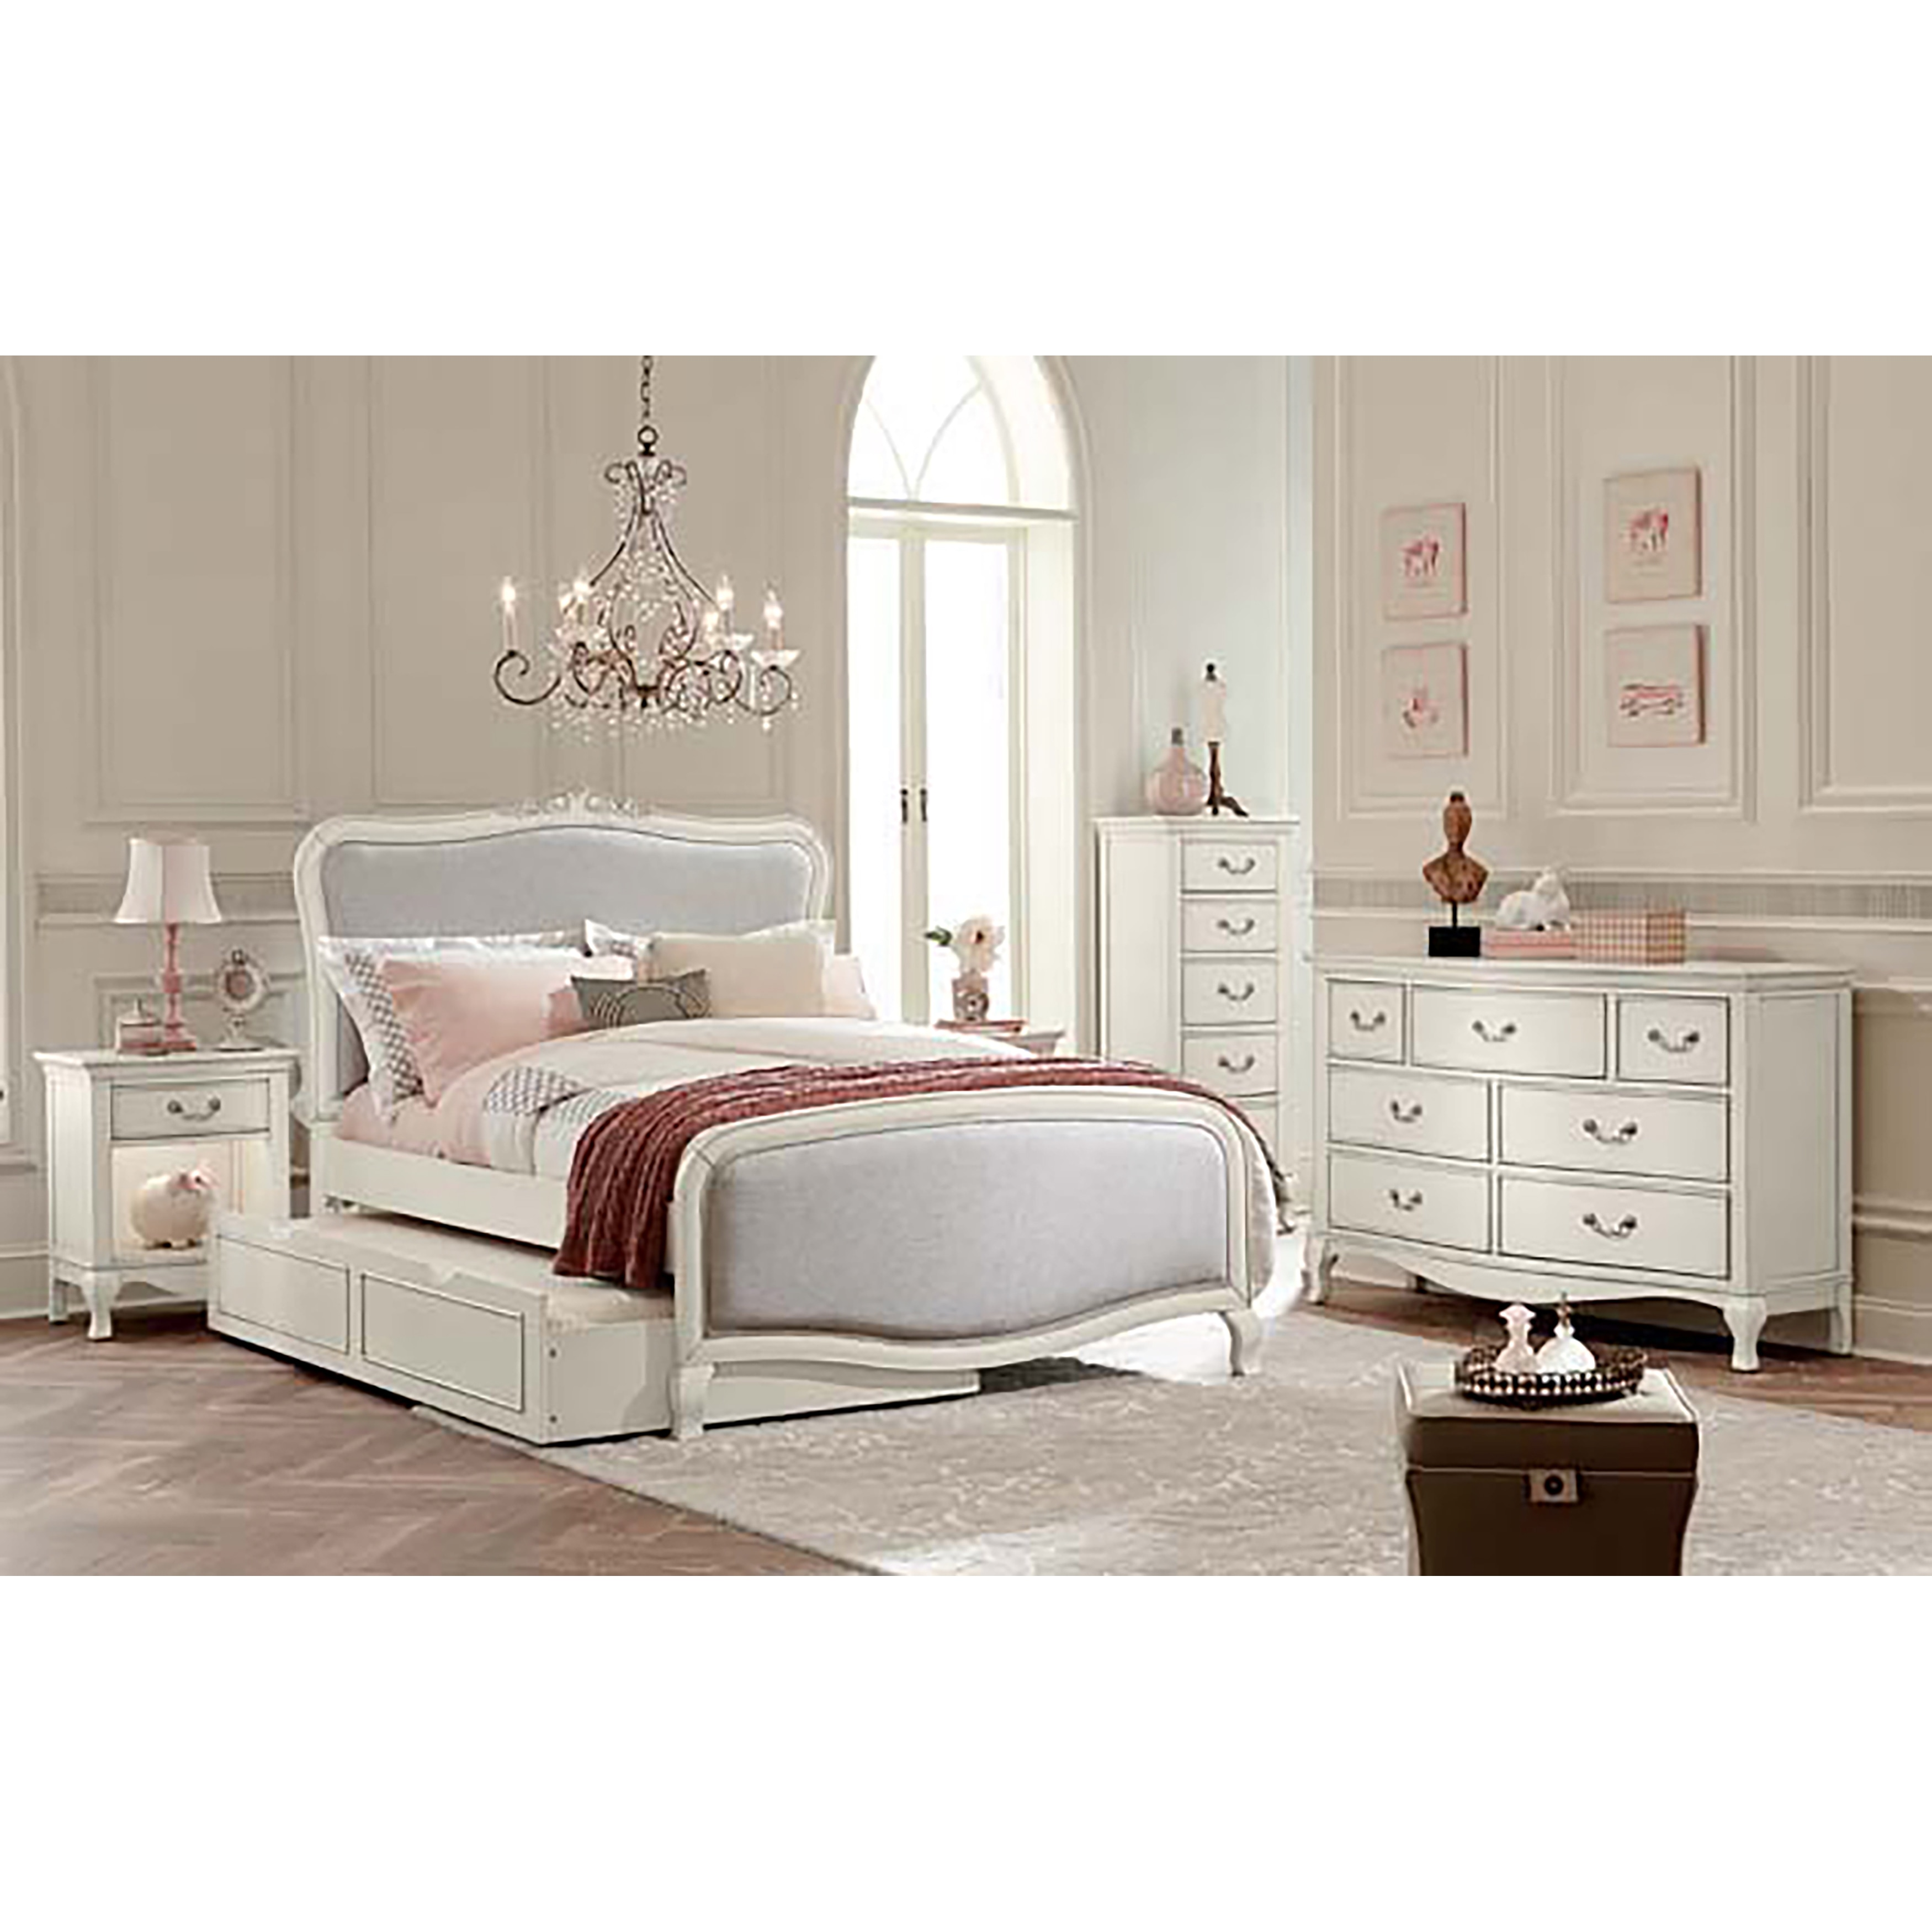 full white bed drawer roomsaver captains trundle with captain summit pdp panel